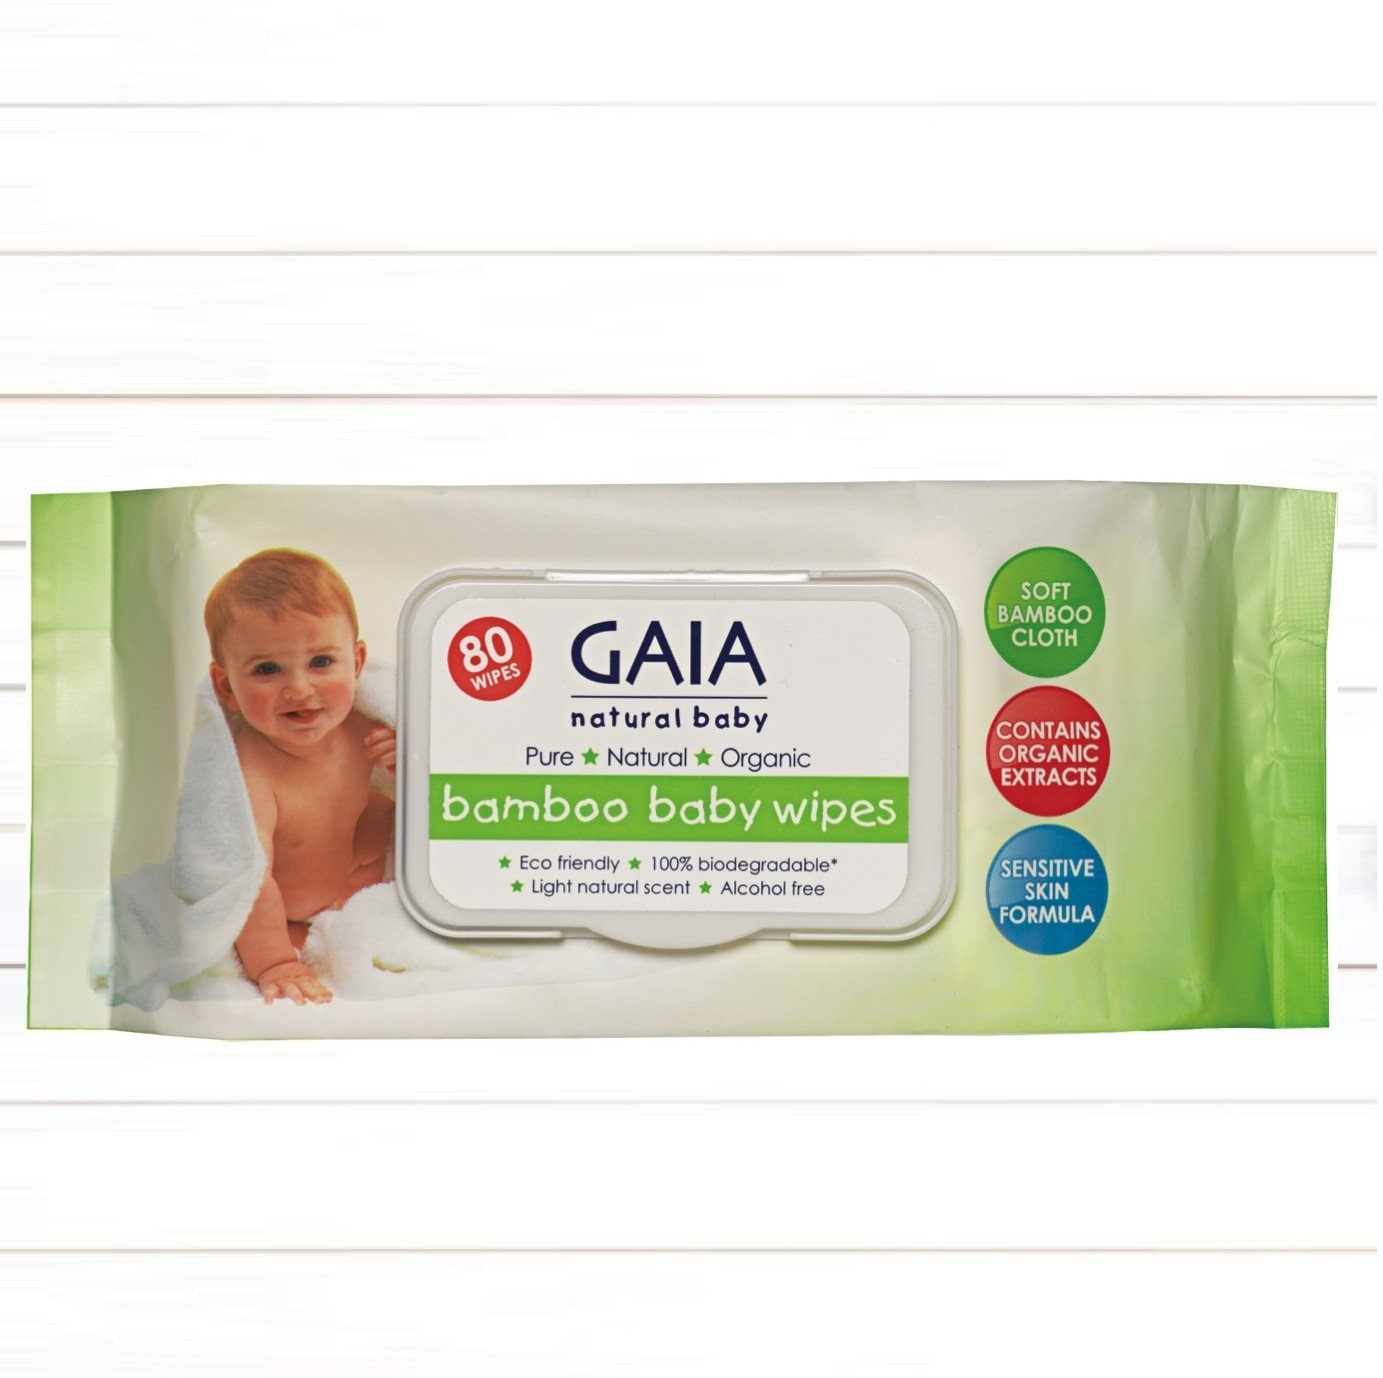 GAIA Bamboo Baby Wipes 80s